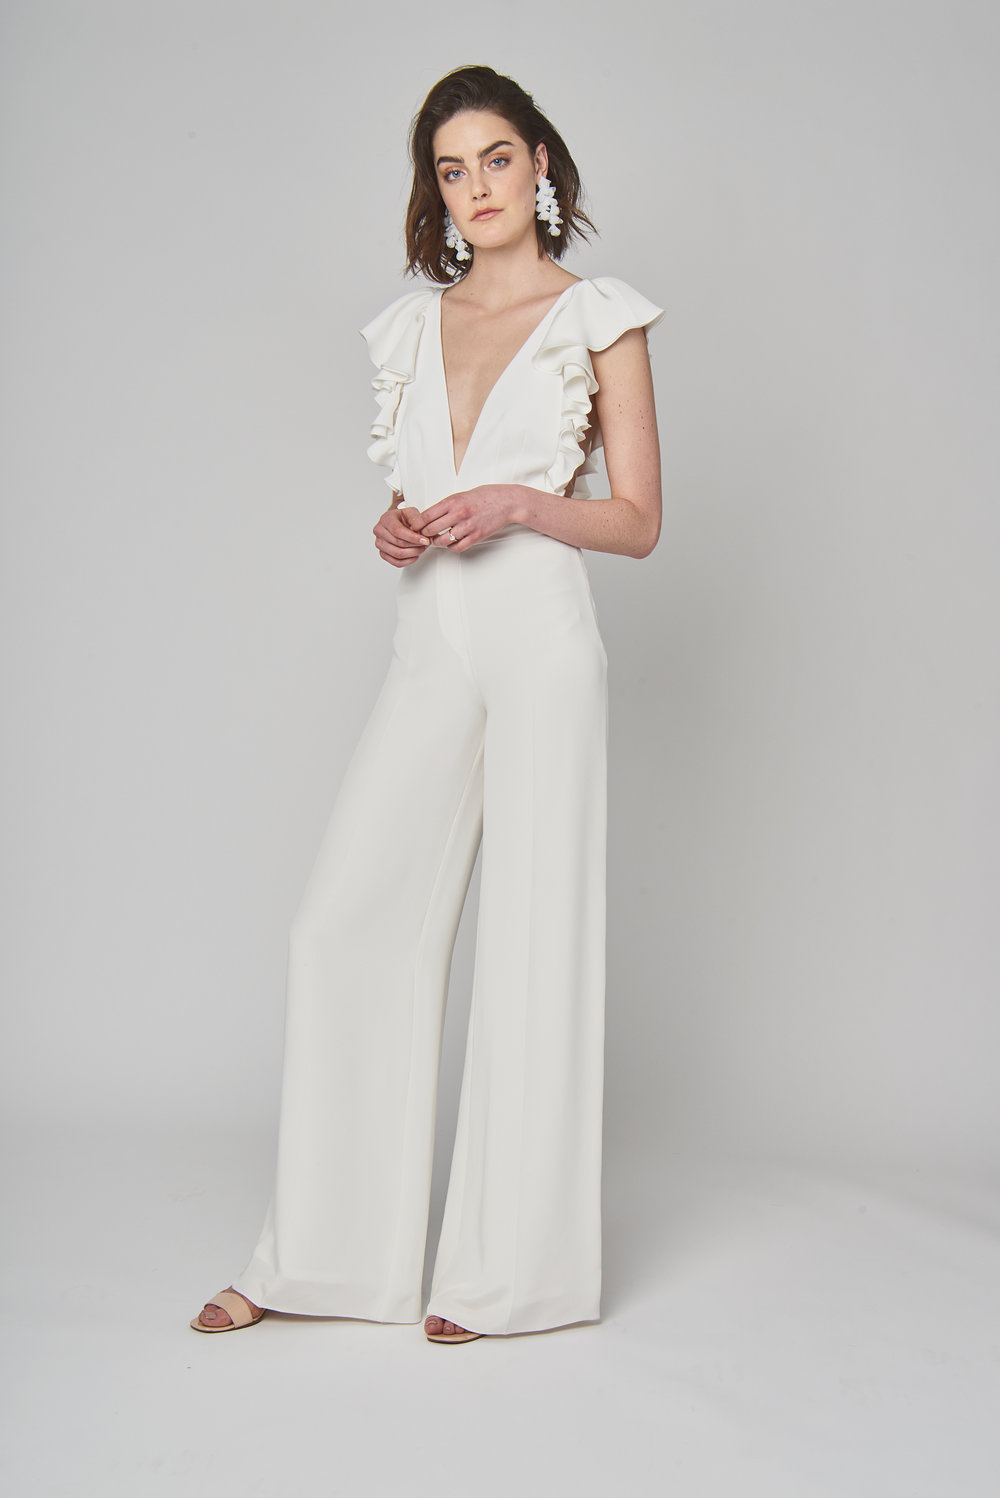 Alexandra Grecco  - Lucy bodysuit and Harlow pants, with the option to buy as separates or as a jumpsuit.